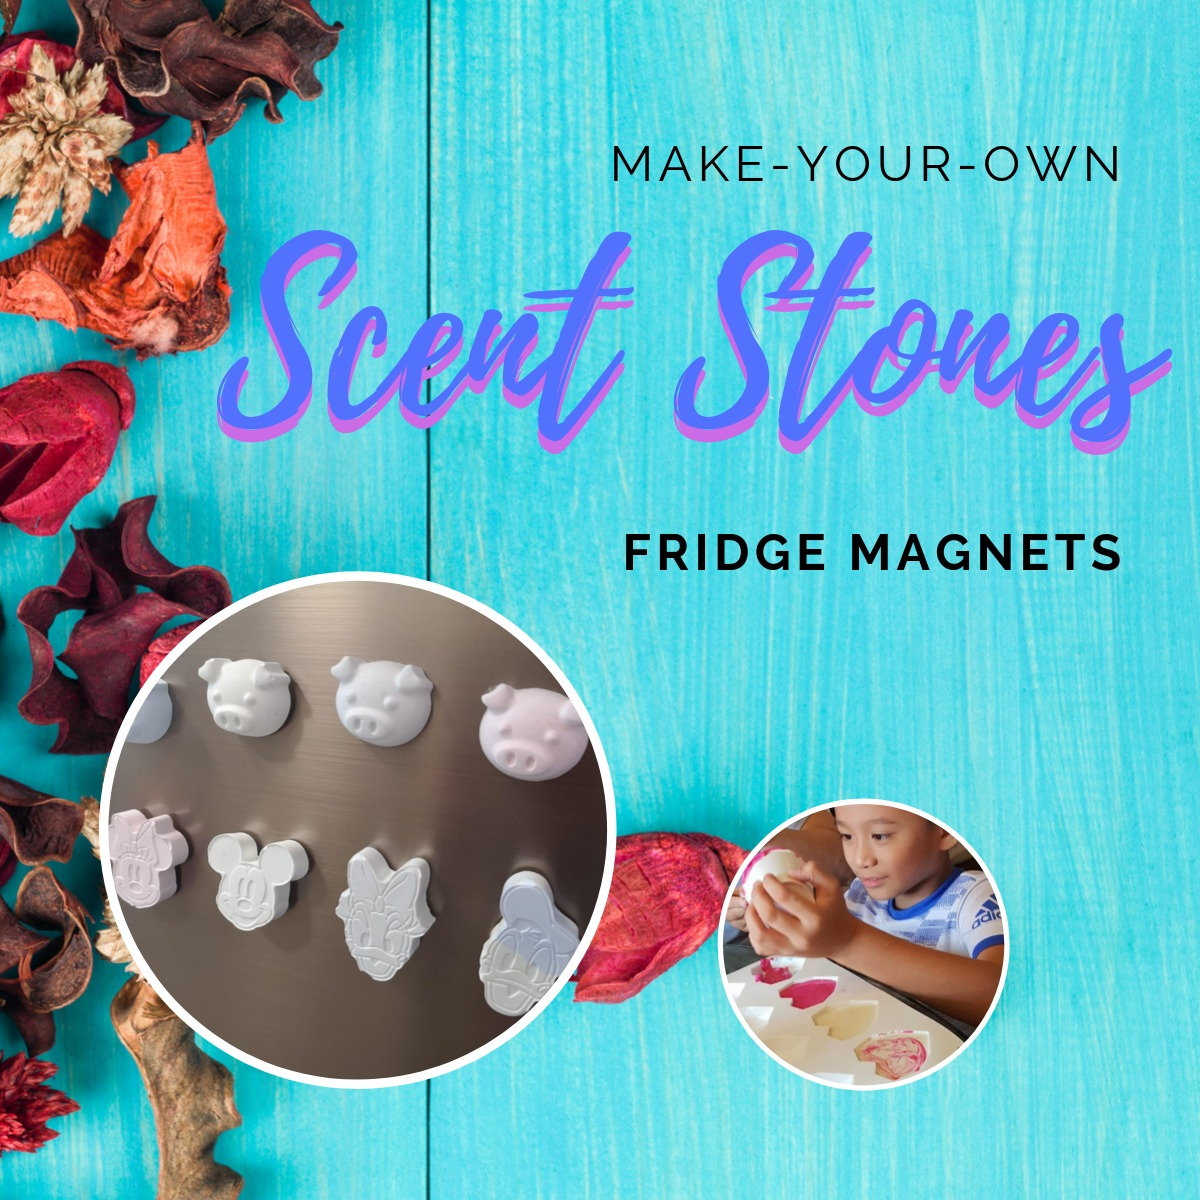 whatsapp-image-2019-10-11-at-22.05.51_0_29172800_1572494938 Event - Children Holiday Workshop - Make Your Own Scent Stones Fridge Magnets